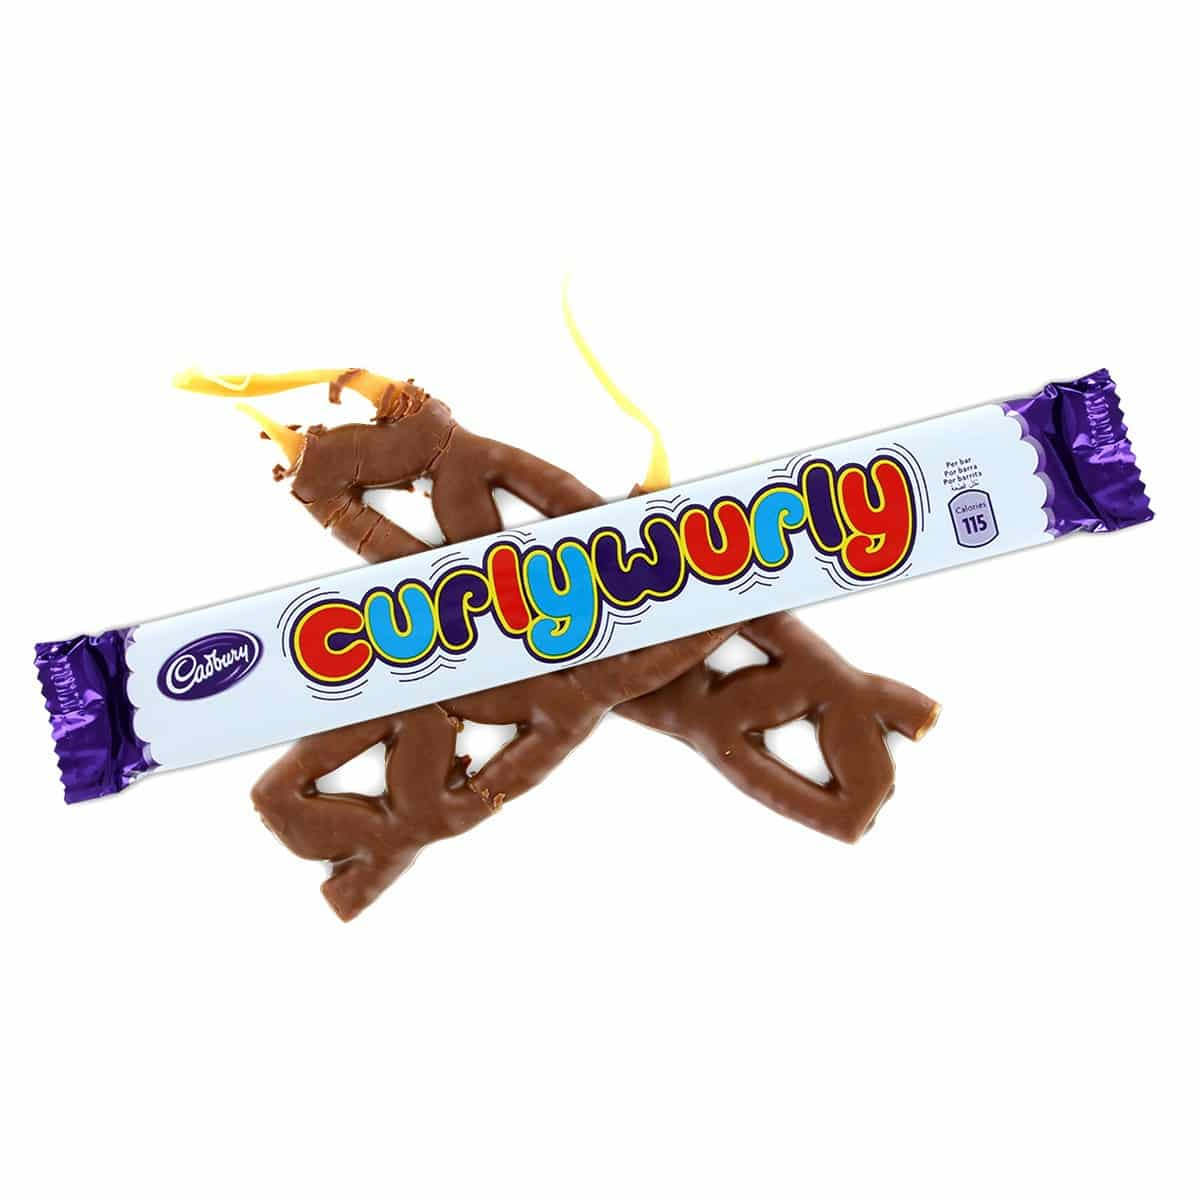 Mad EU law means Curlywurly bars must become 14% less curly and 8% less wurly